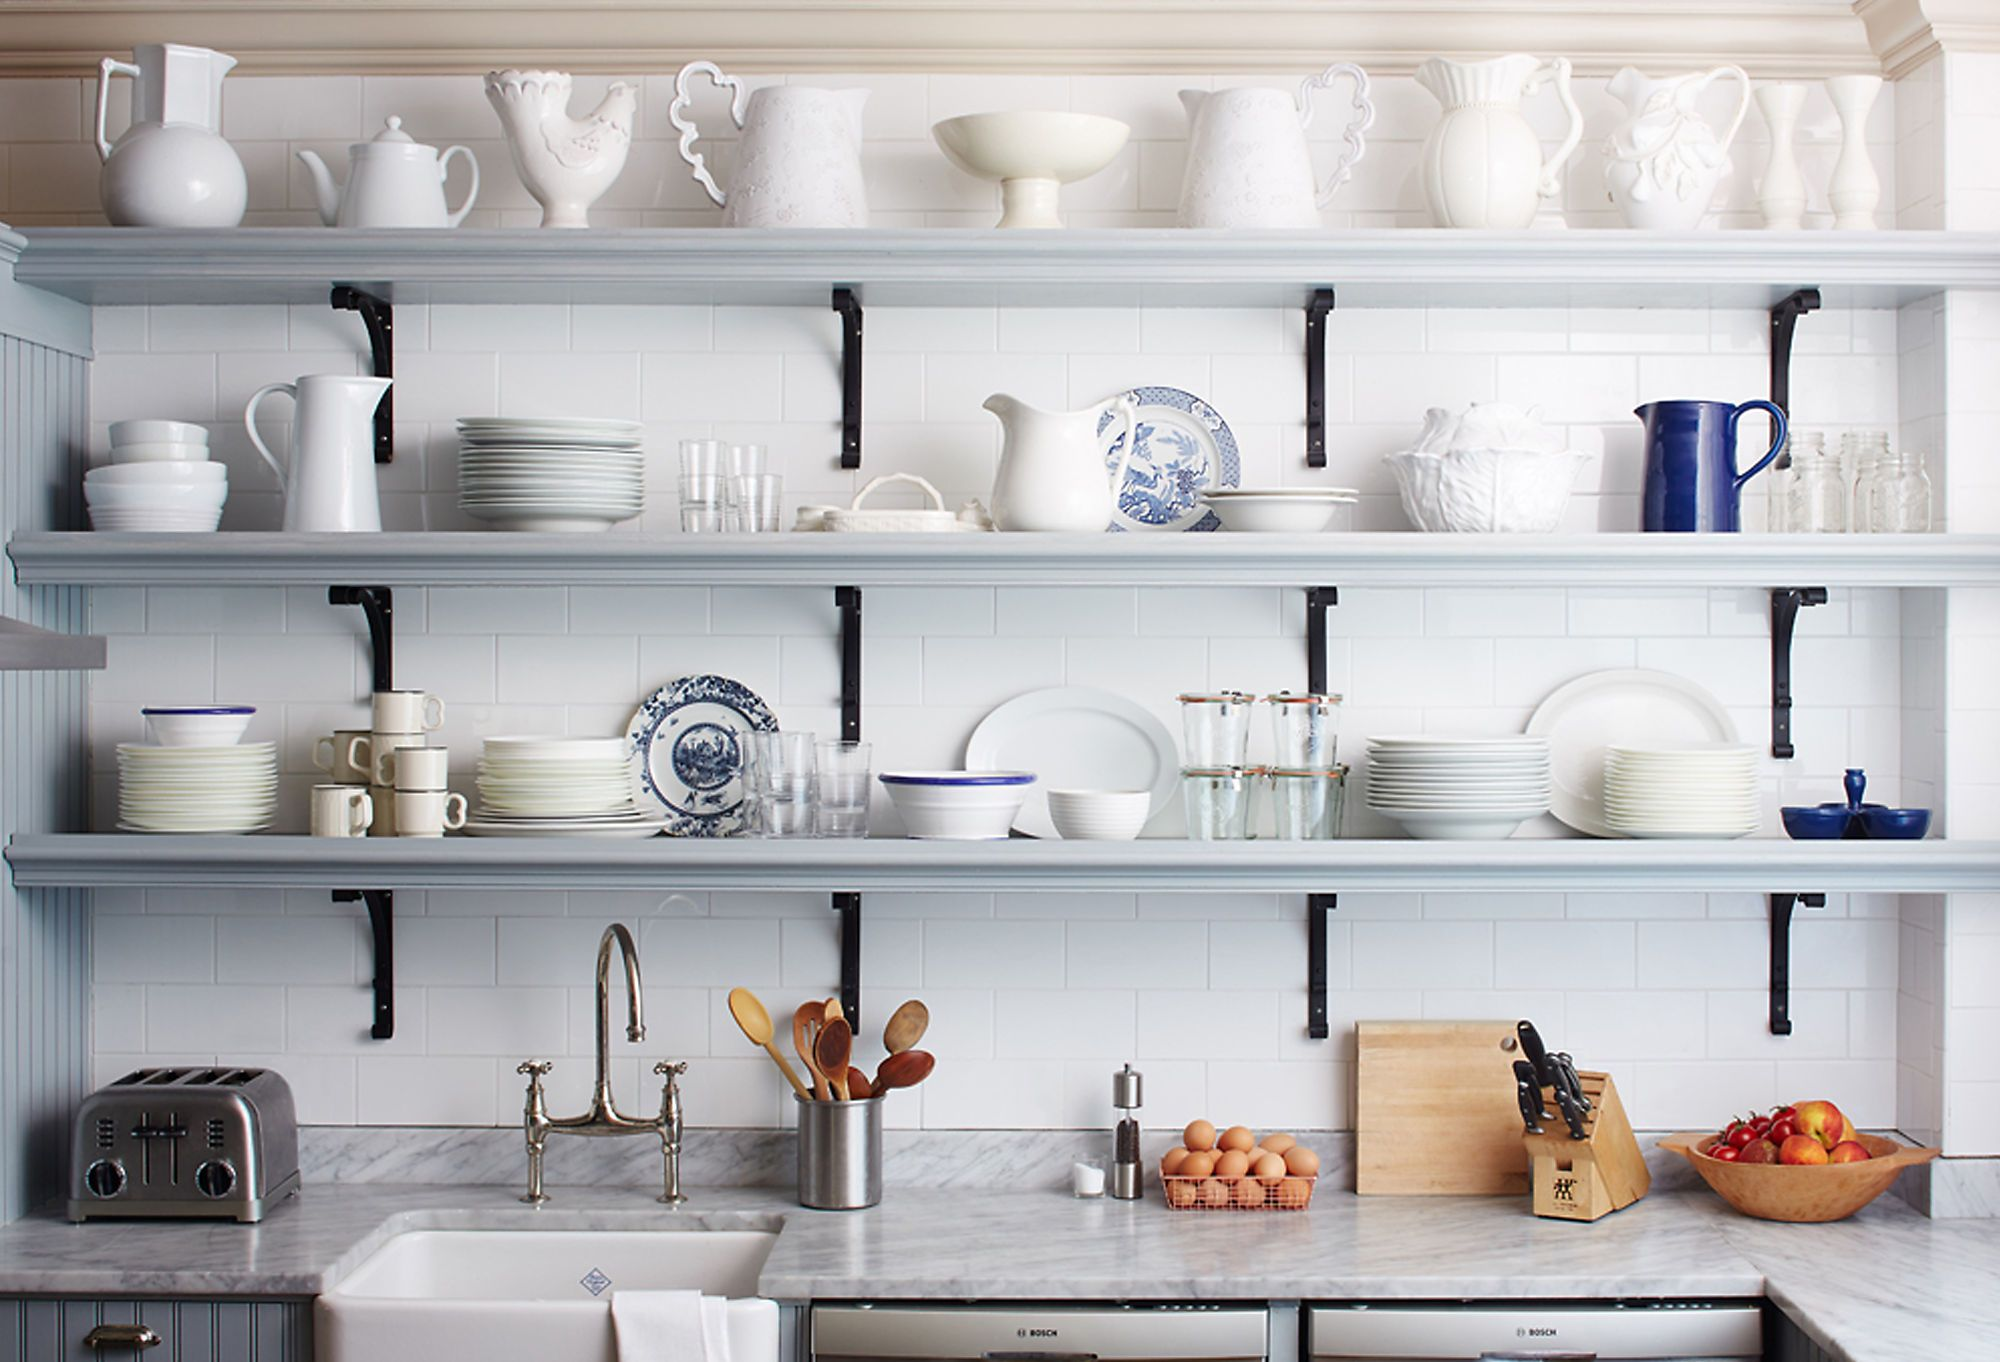 The Coveted Kitchen : Cookware by Staub & More | Nest- Kitchen ...